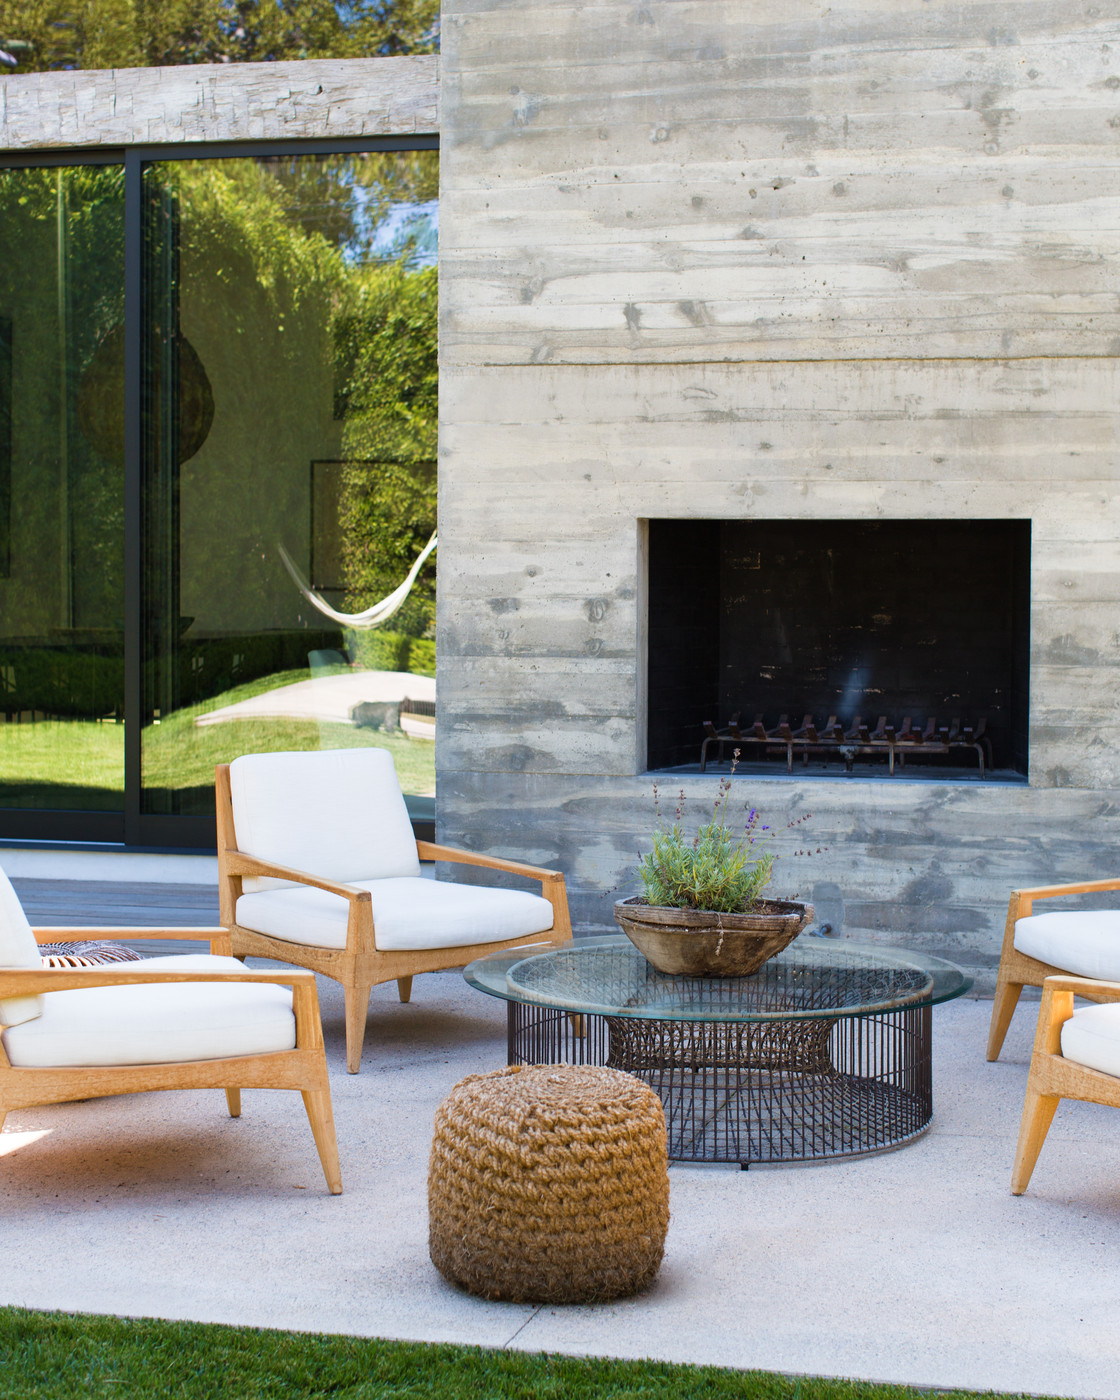 Outdoor Fireplace Design Ideas: Fireplace Decor Ideas